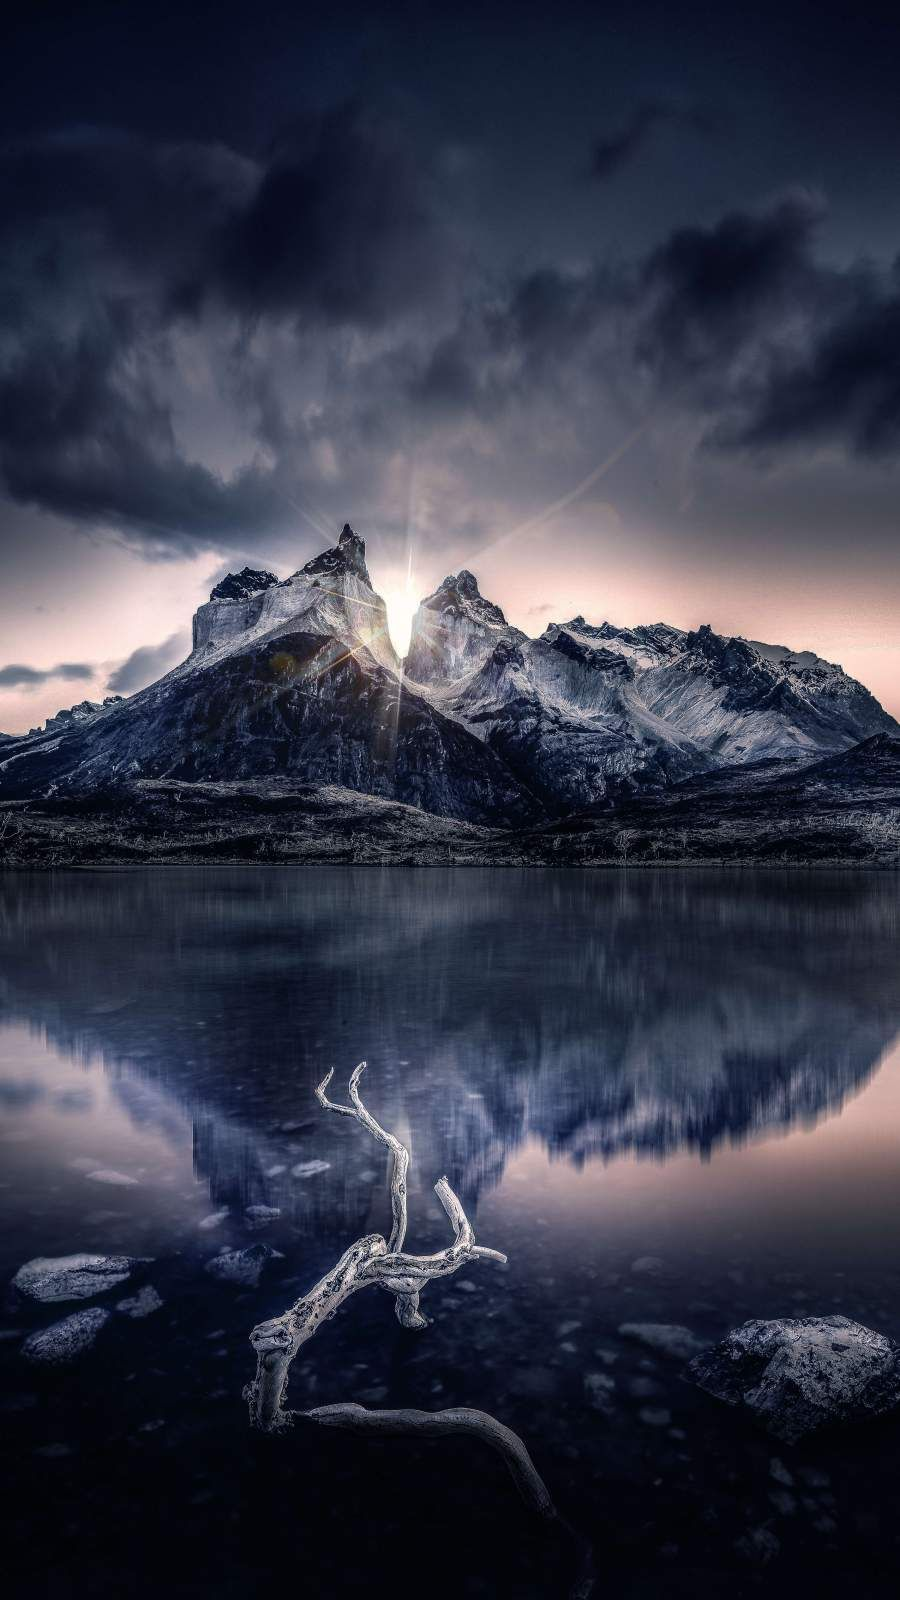 Snow Mountain Reflection iPhone Wallpaper   Nature ...